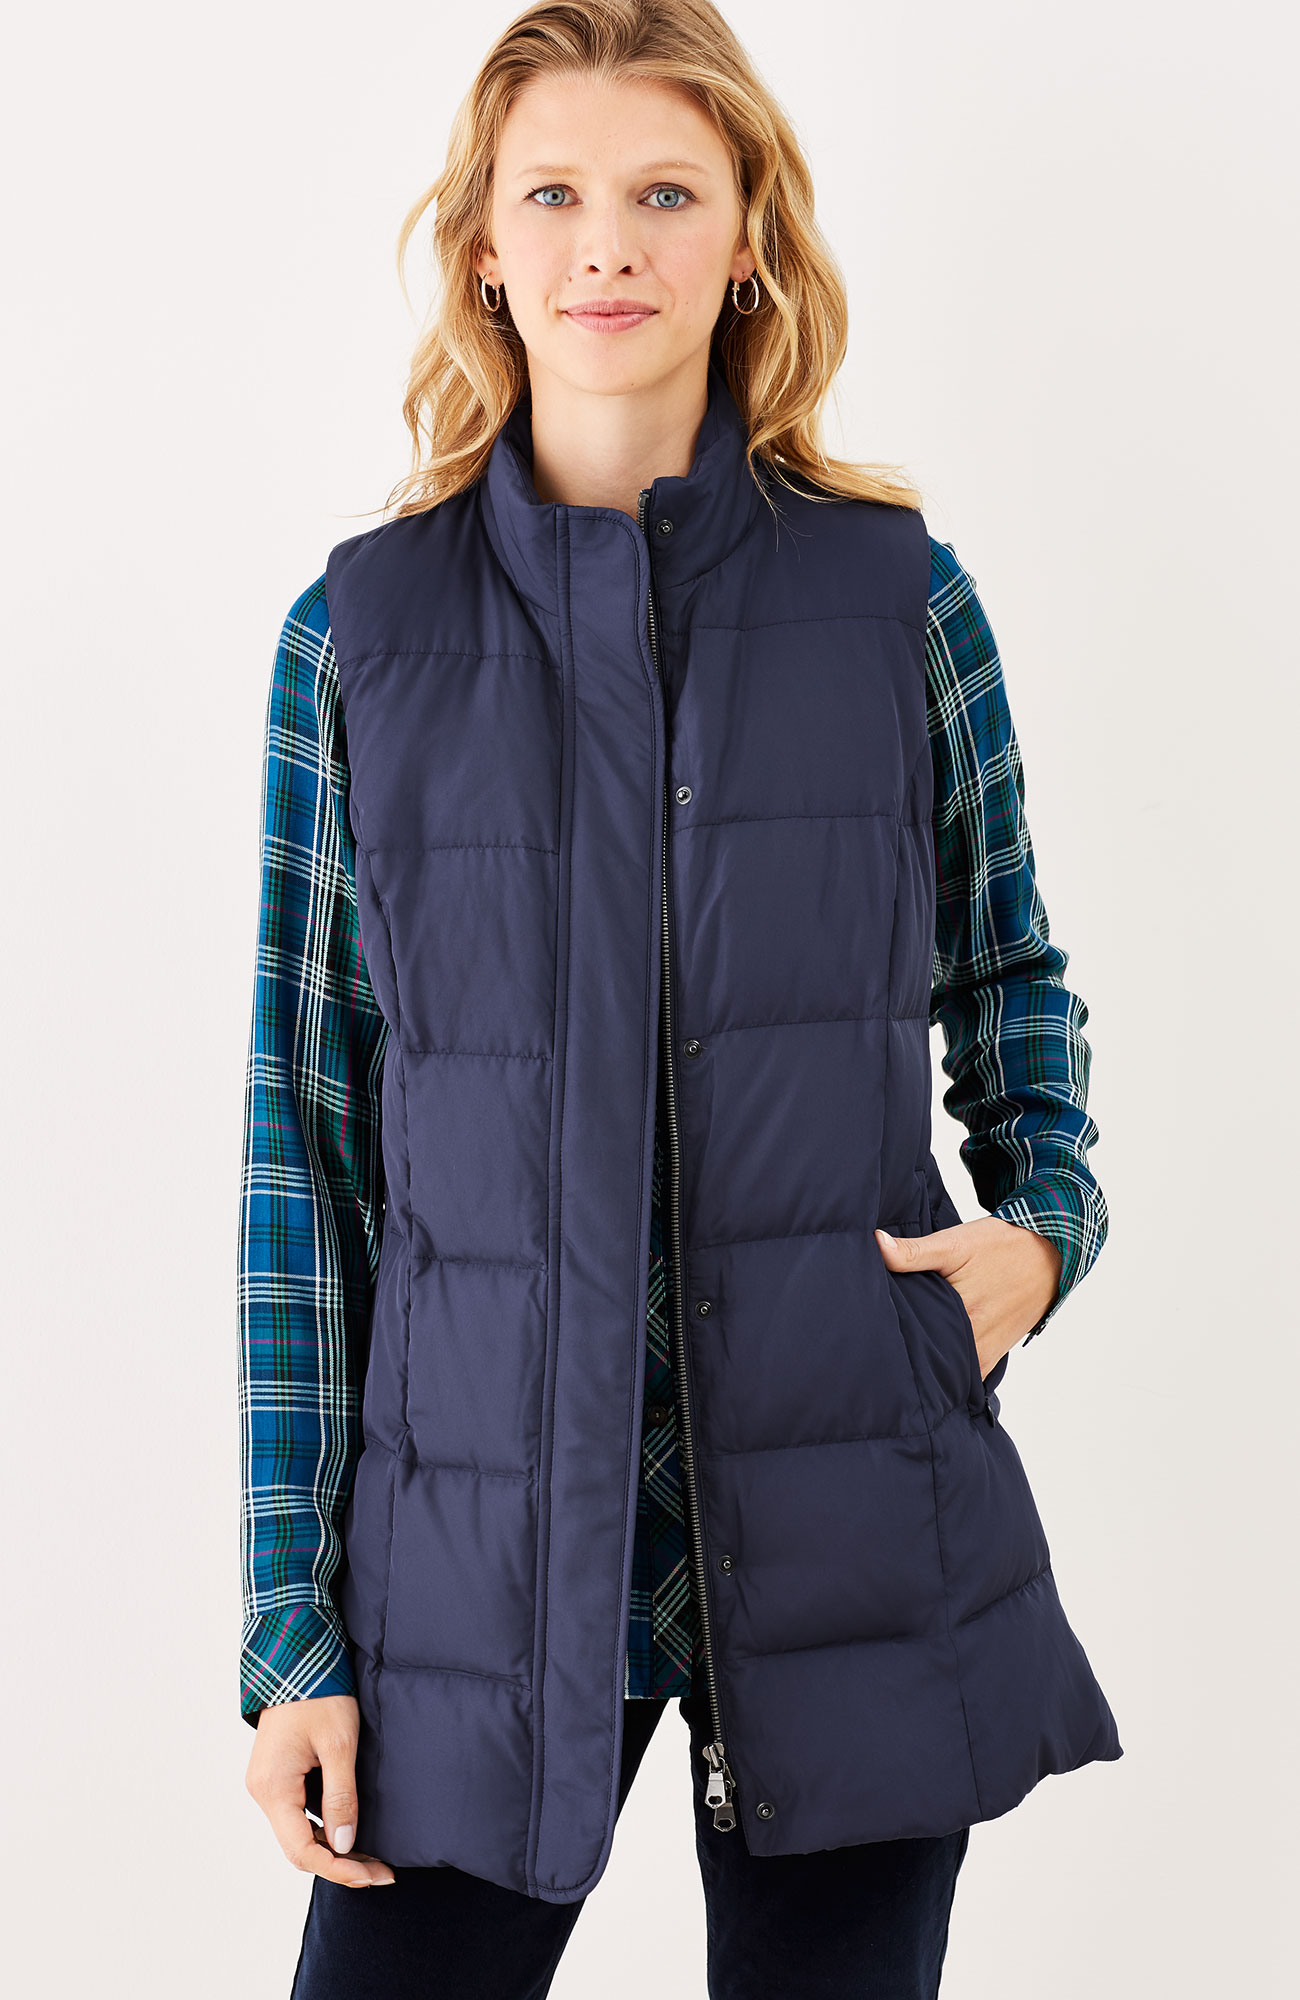 Highland Park long down puffer vest